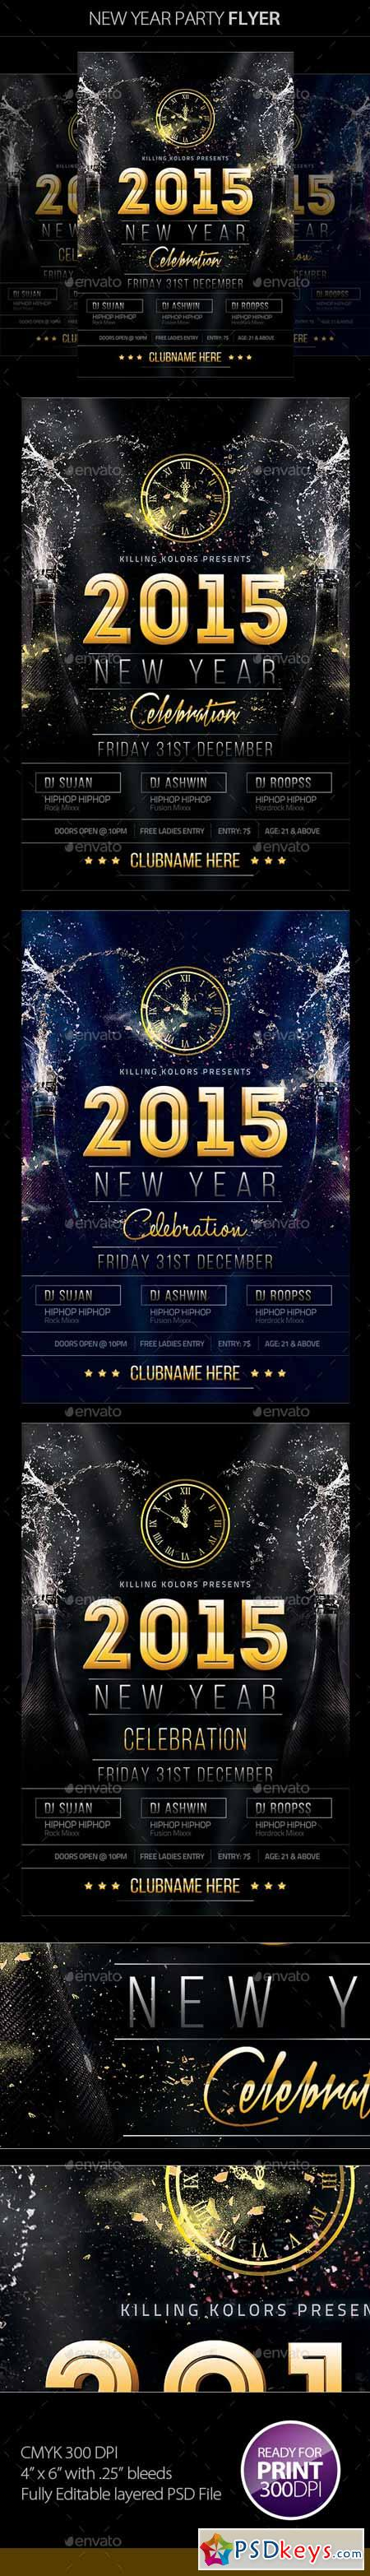 New Year Party Flyer 9503050